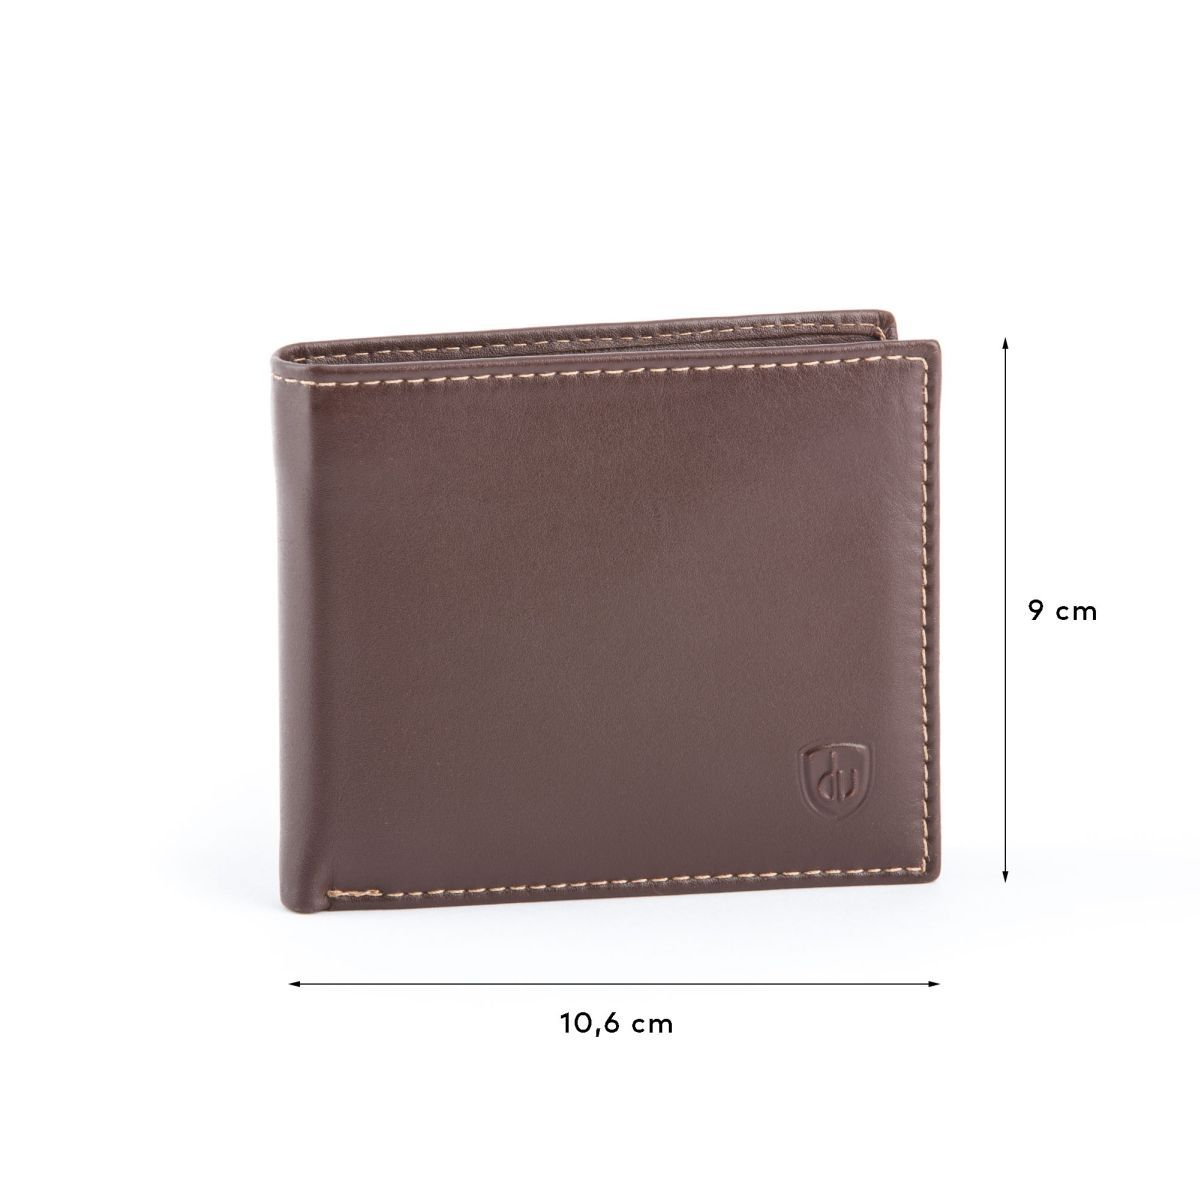 dv Compact Leather Wallet With Coin Pocket - Brown